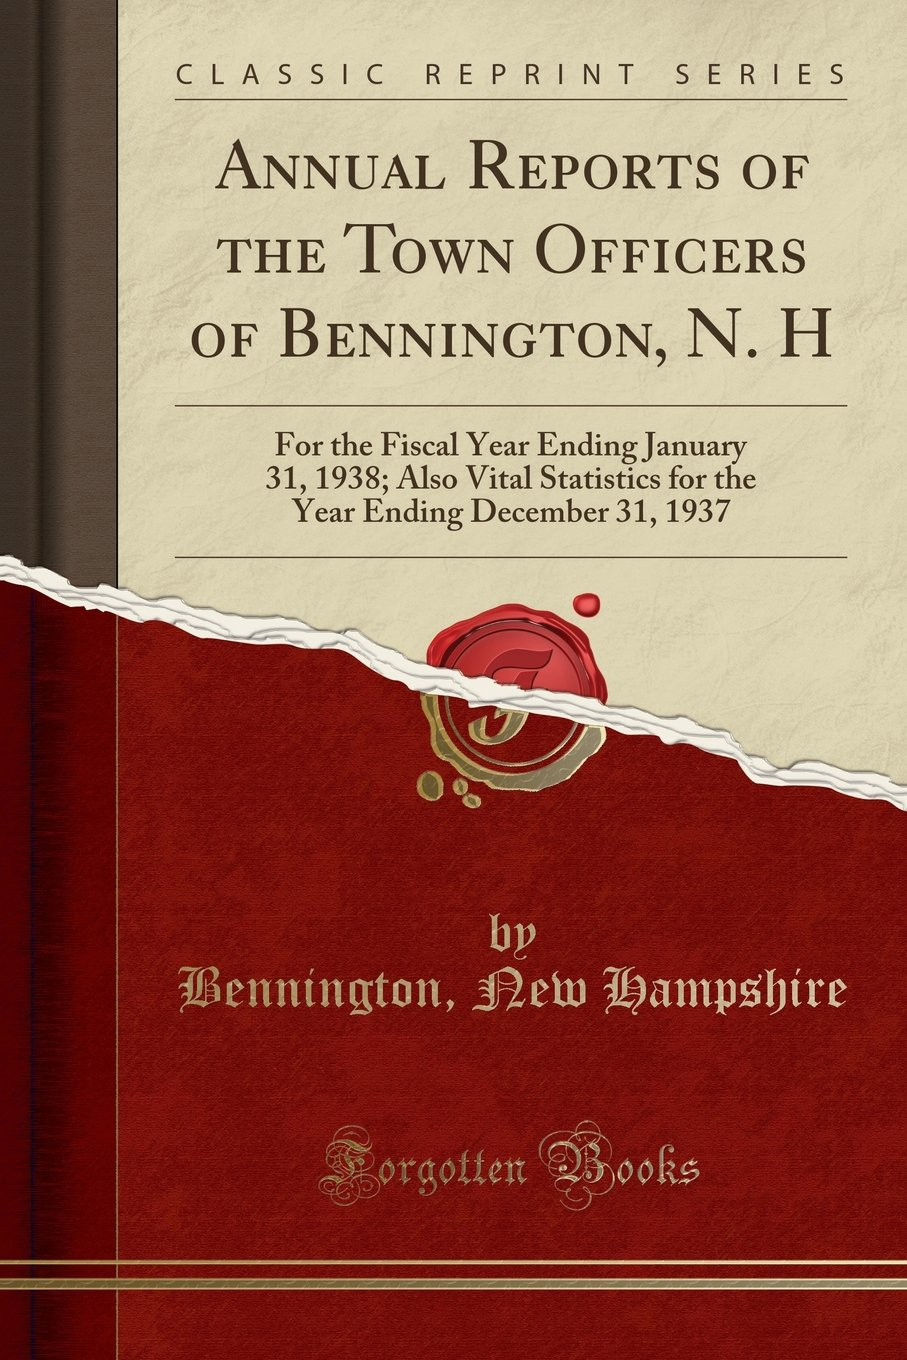 Annual Reports of the Town Officers of Bennington, N. H. For the Fiscal Year Ending January 31, 1938: Also Vital Statistics for the Year Ending December 31, 1937 (Classic Reprint) pdf epub